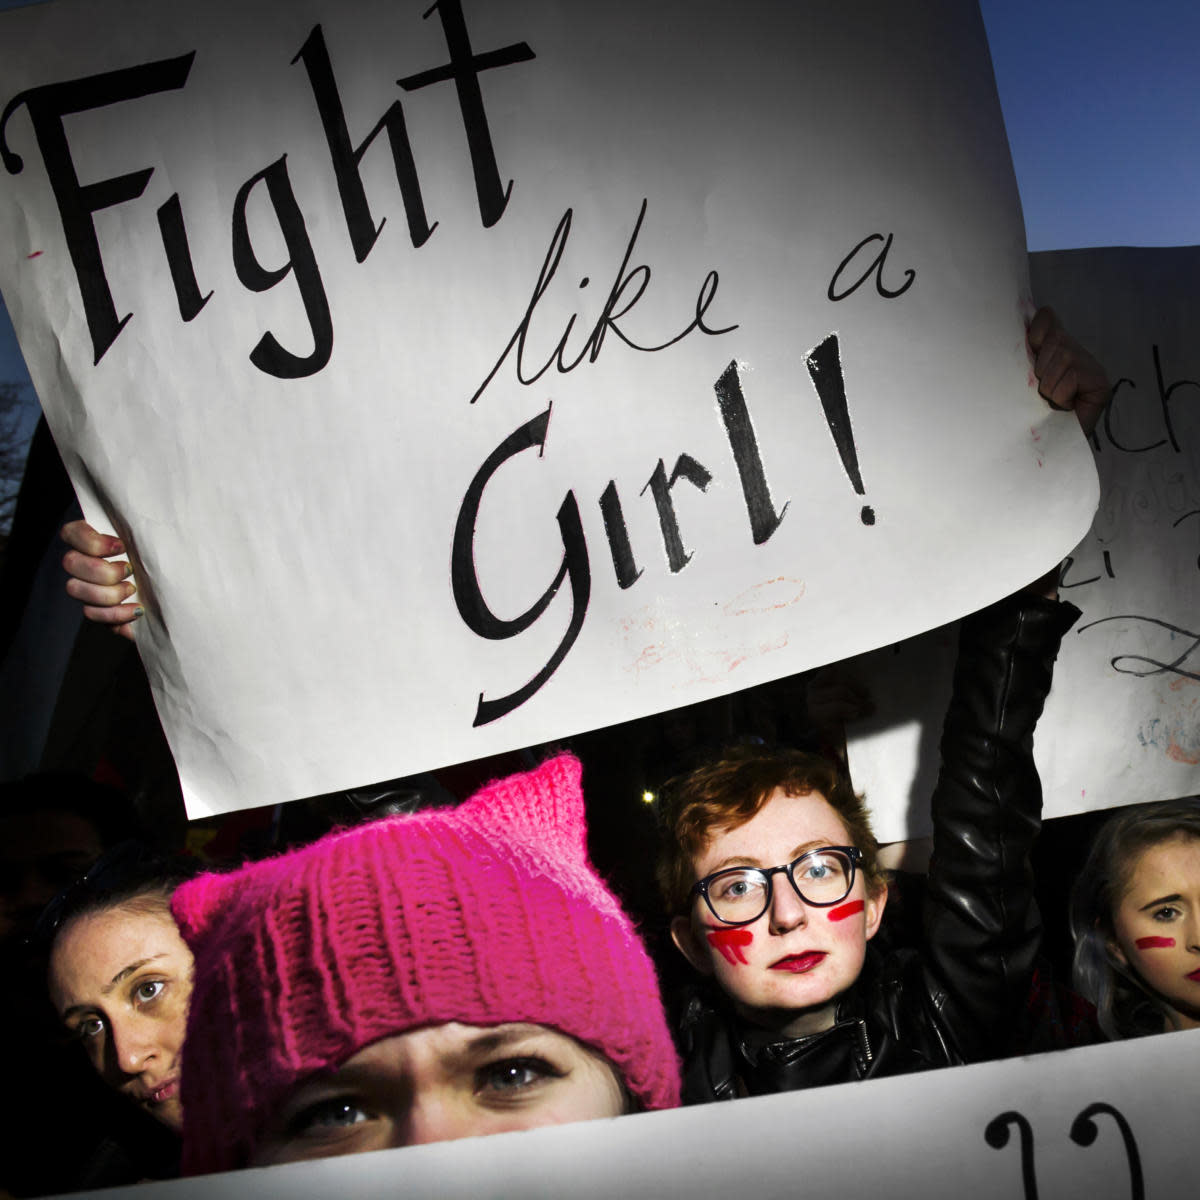 Demonstrators for the women's strike during International Women's Day, in NYC on March 8, 2017. (Credit: Dina Litovsky/Redux)